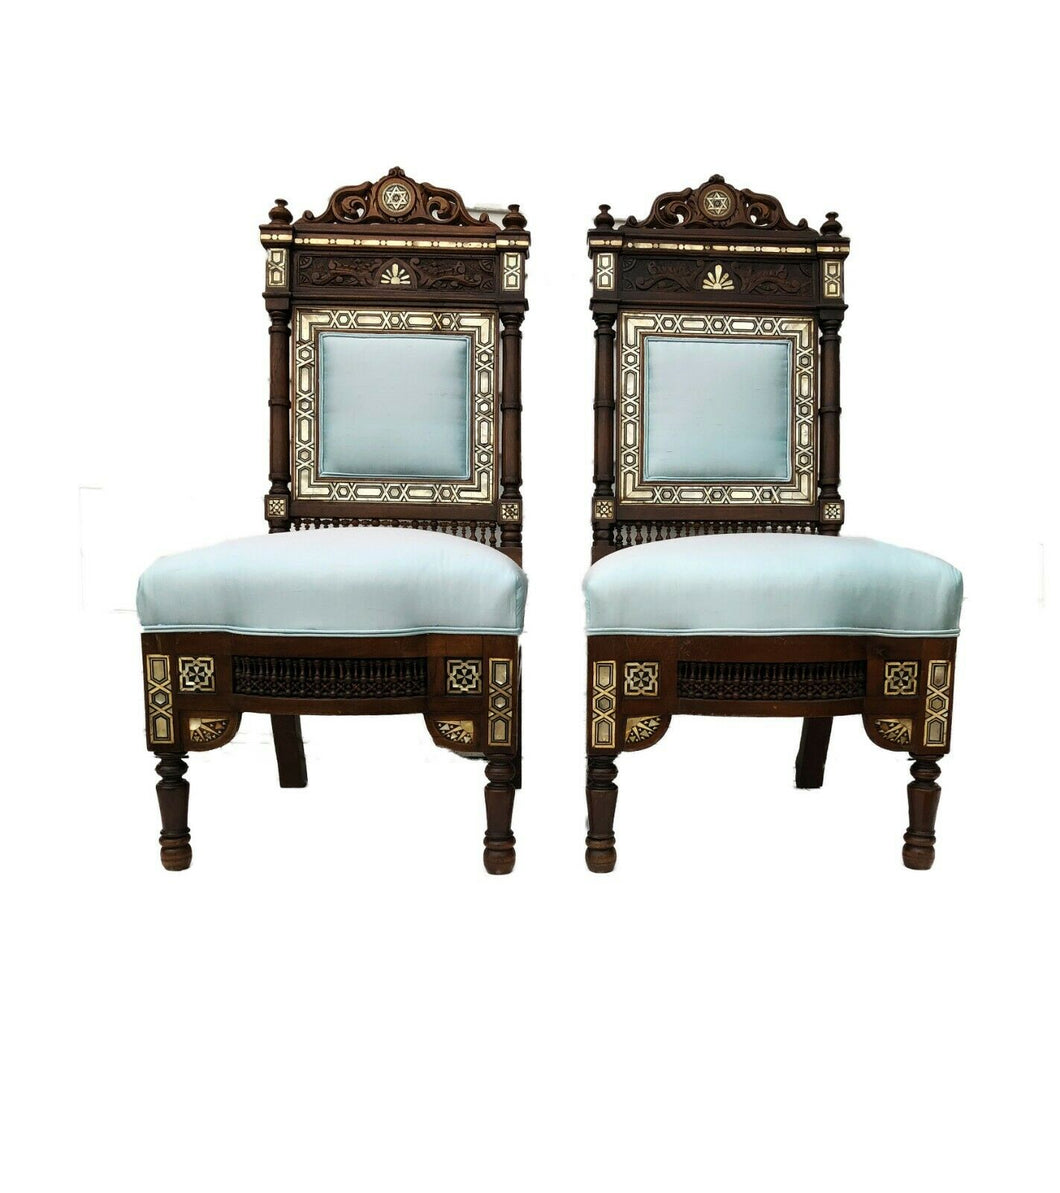 Museum Quality 19th C Moorish/Middle Eastern Pair of chairs 41